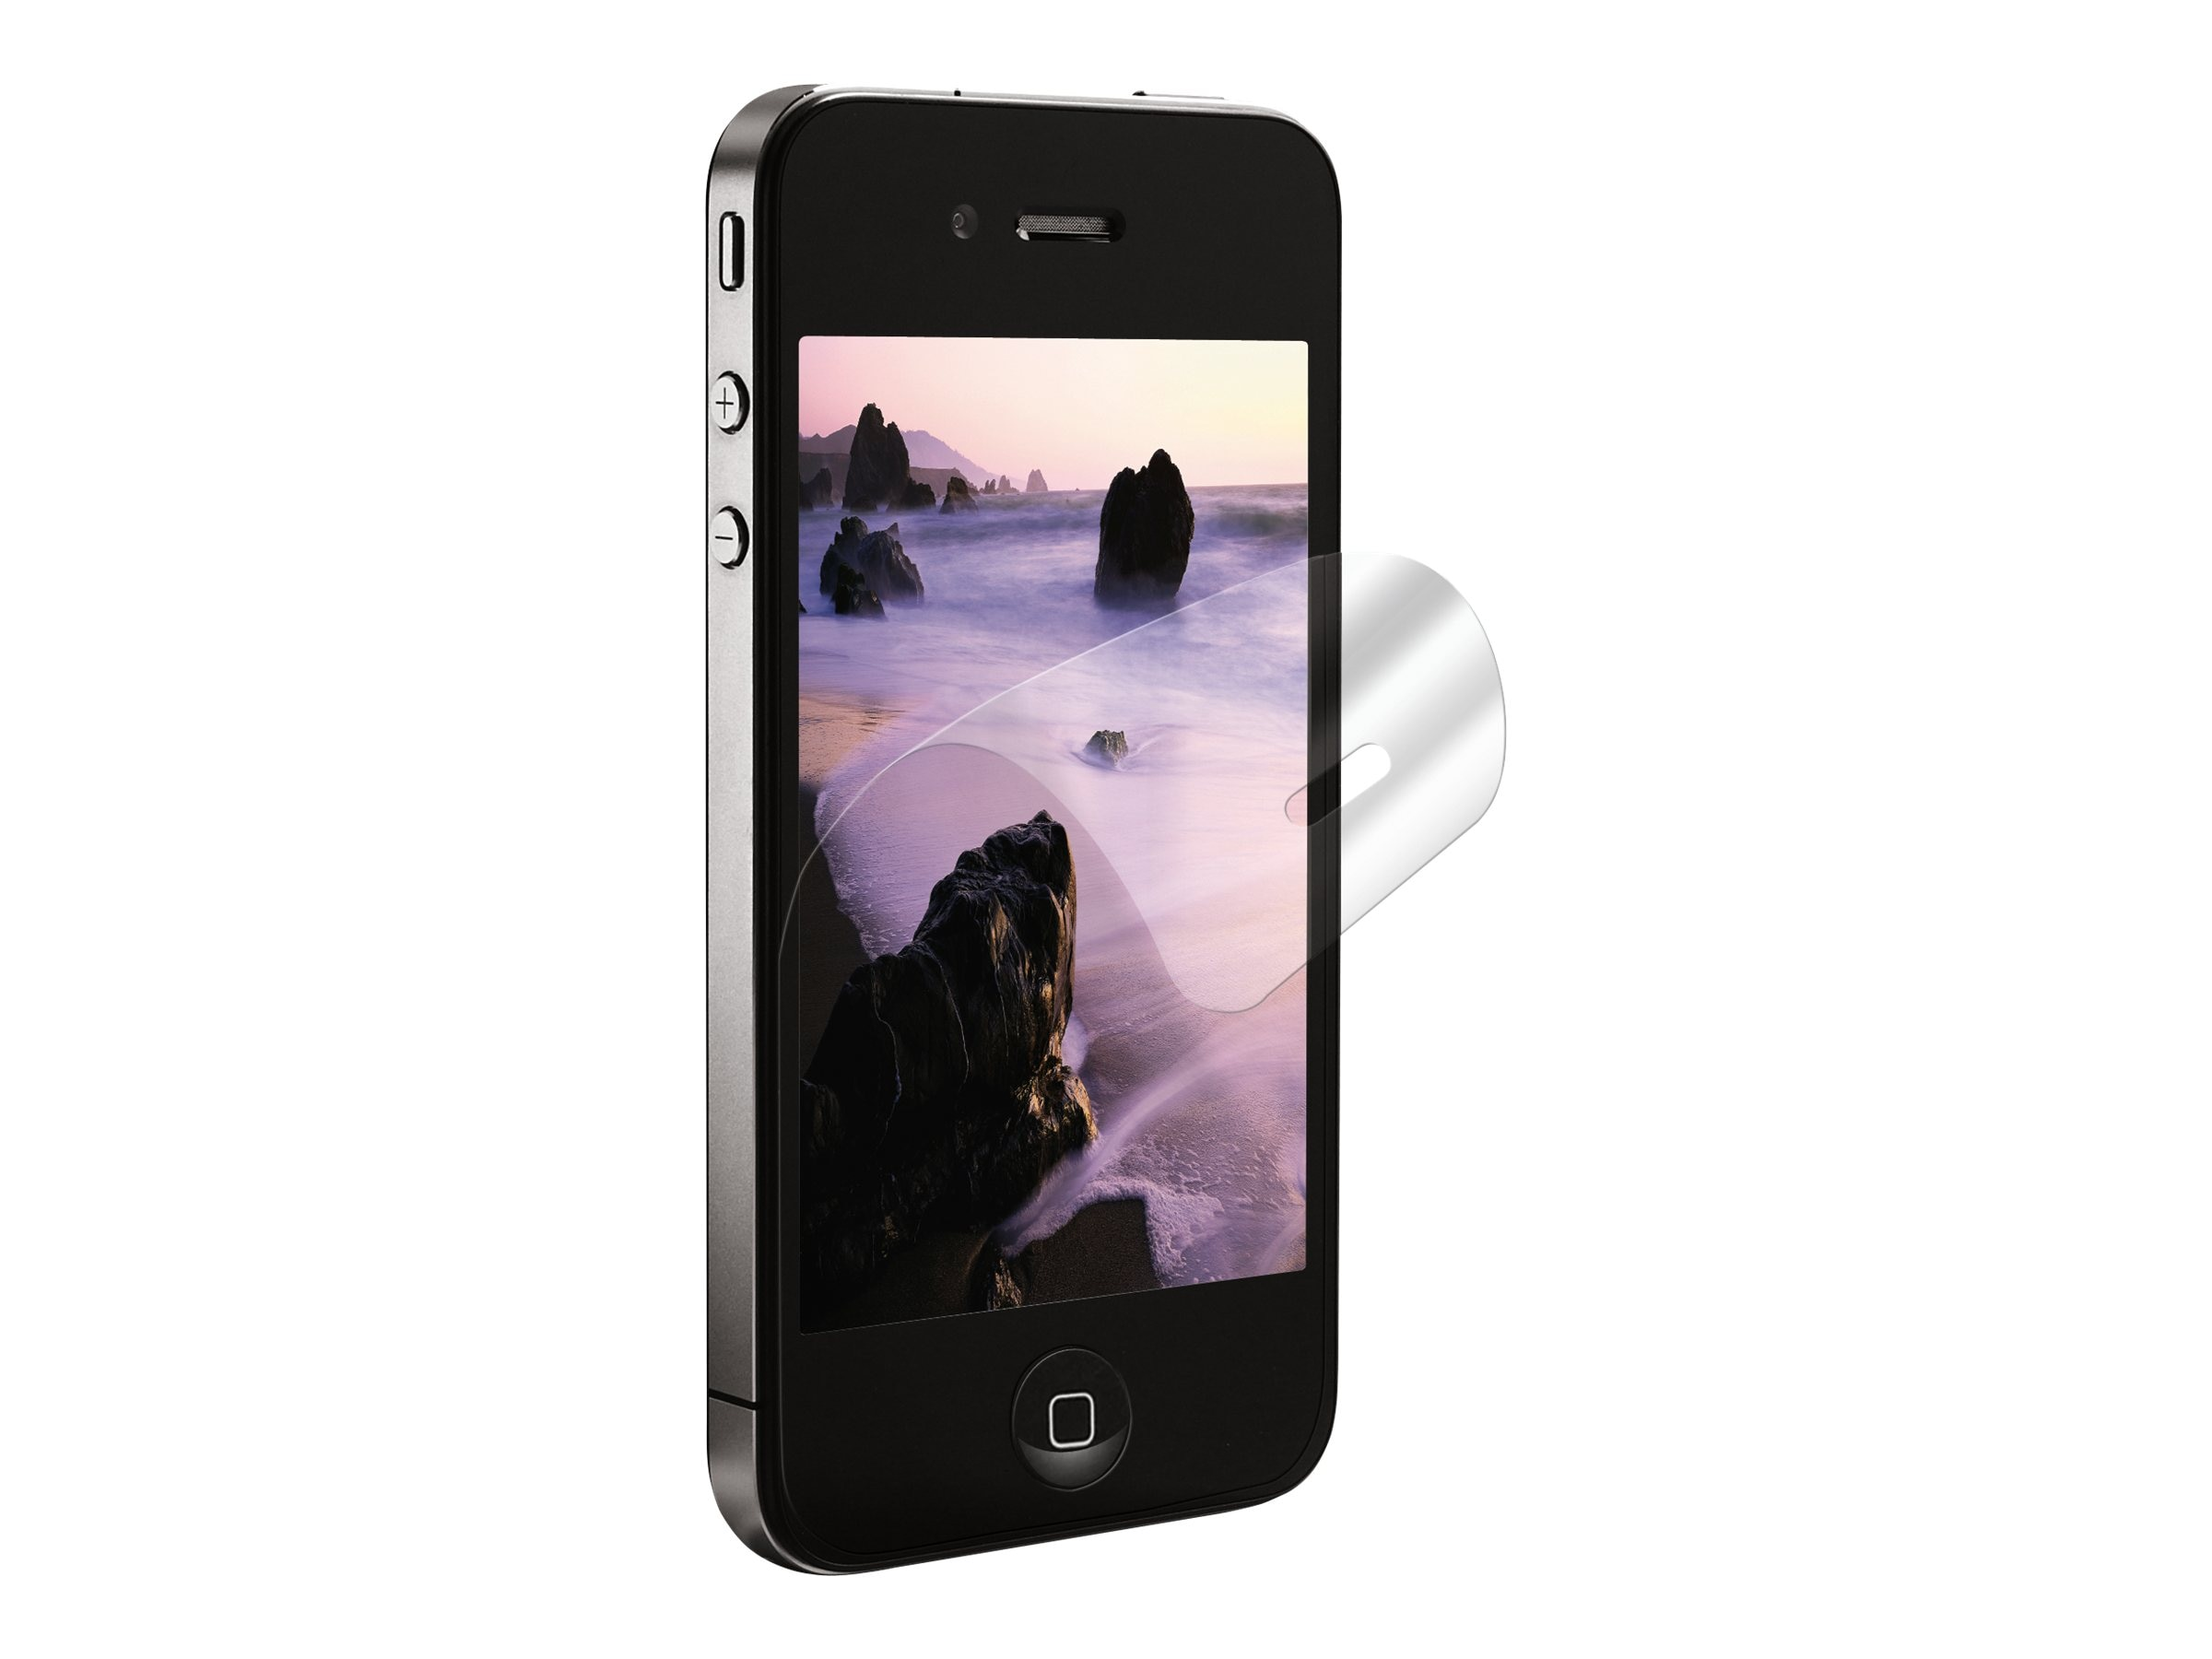 3M Natural View Screen Protector for iPhone 4 & 4S, 98-0440-5243-3, 13537659, Phone Accessories